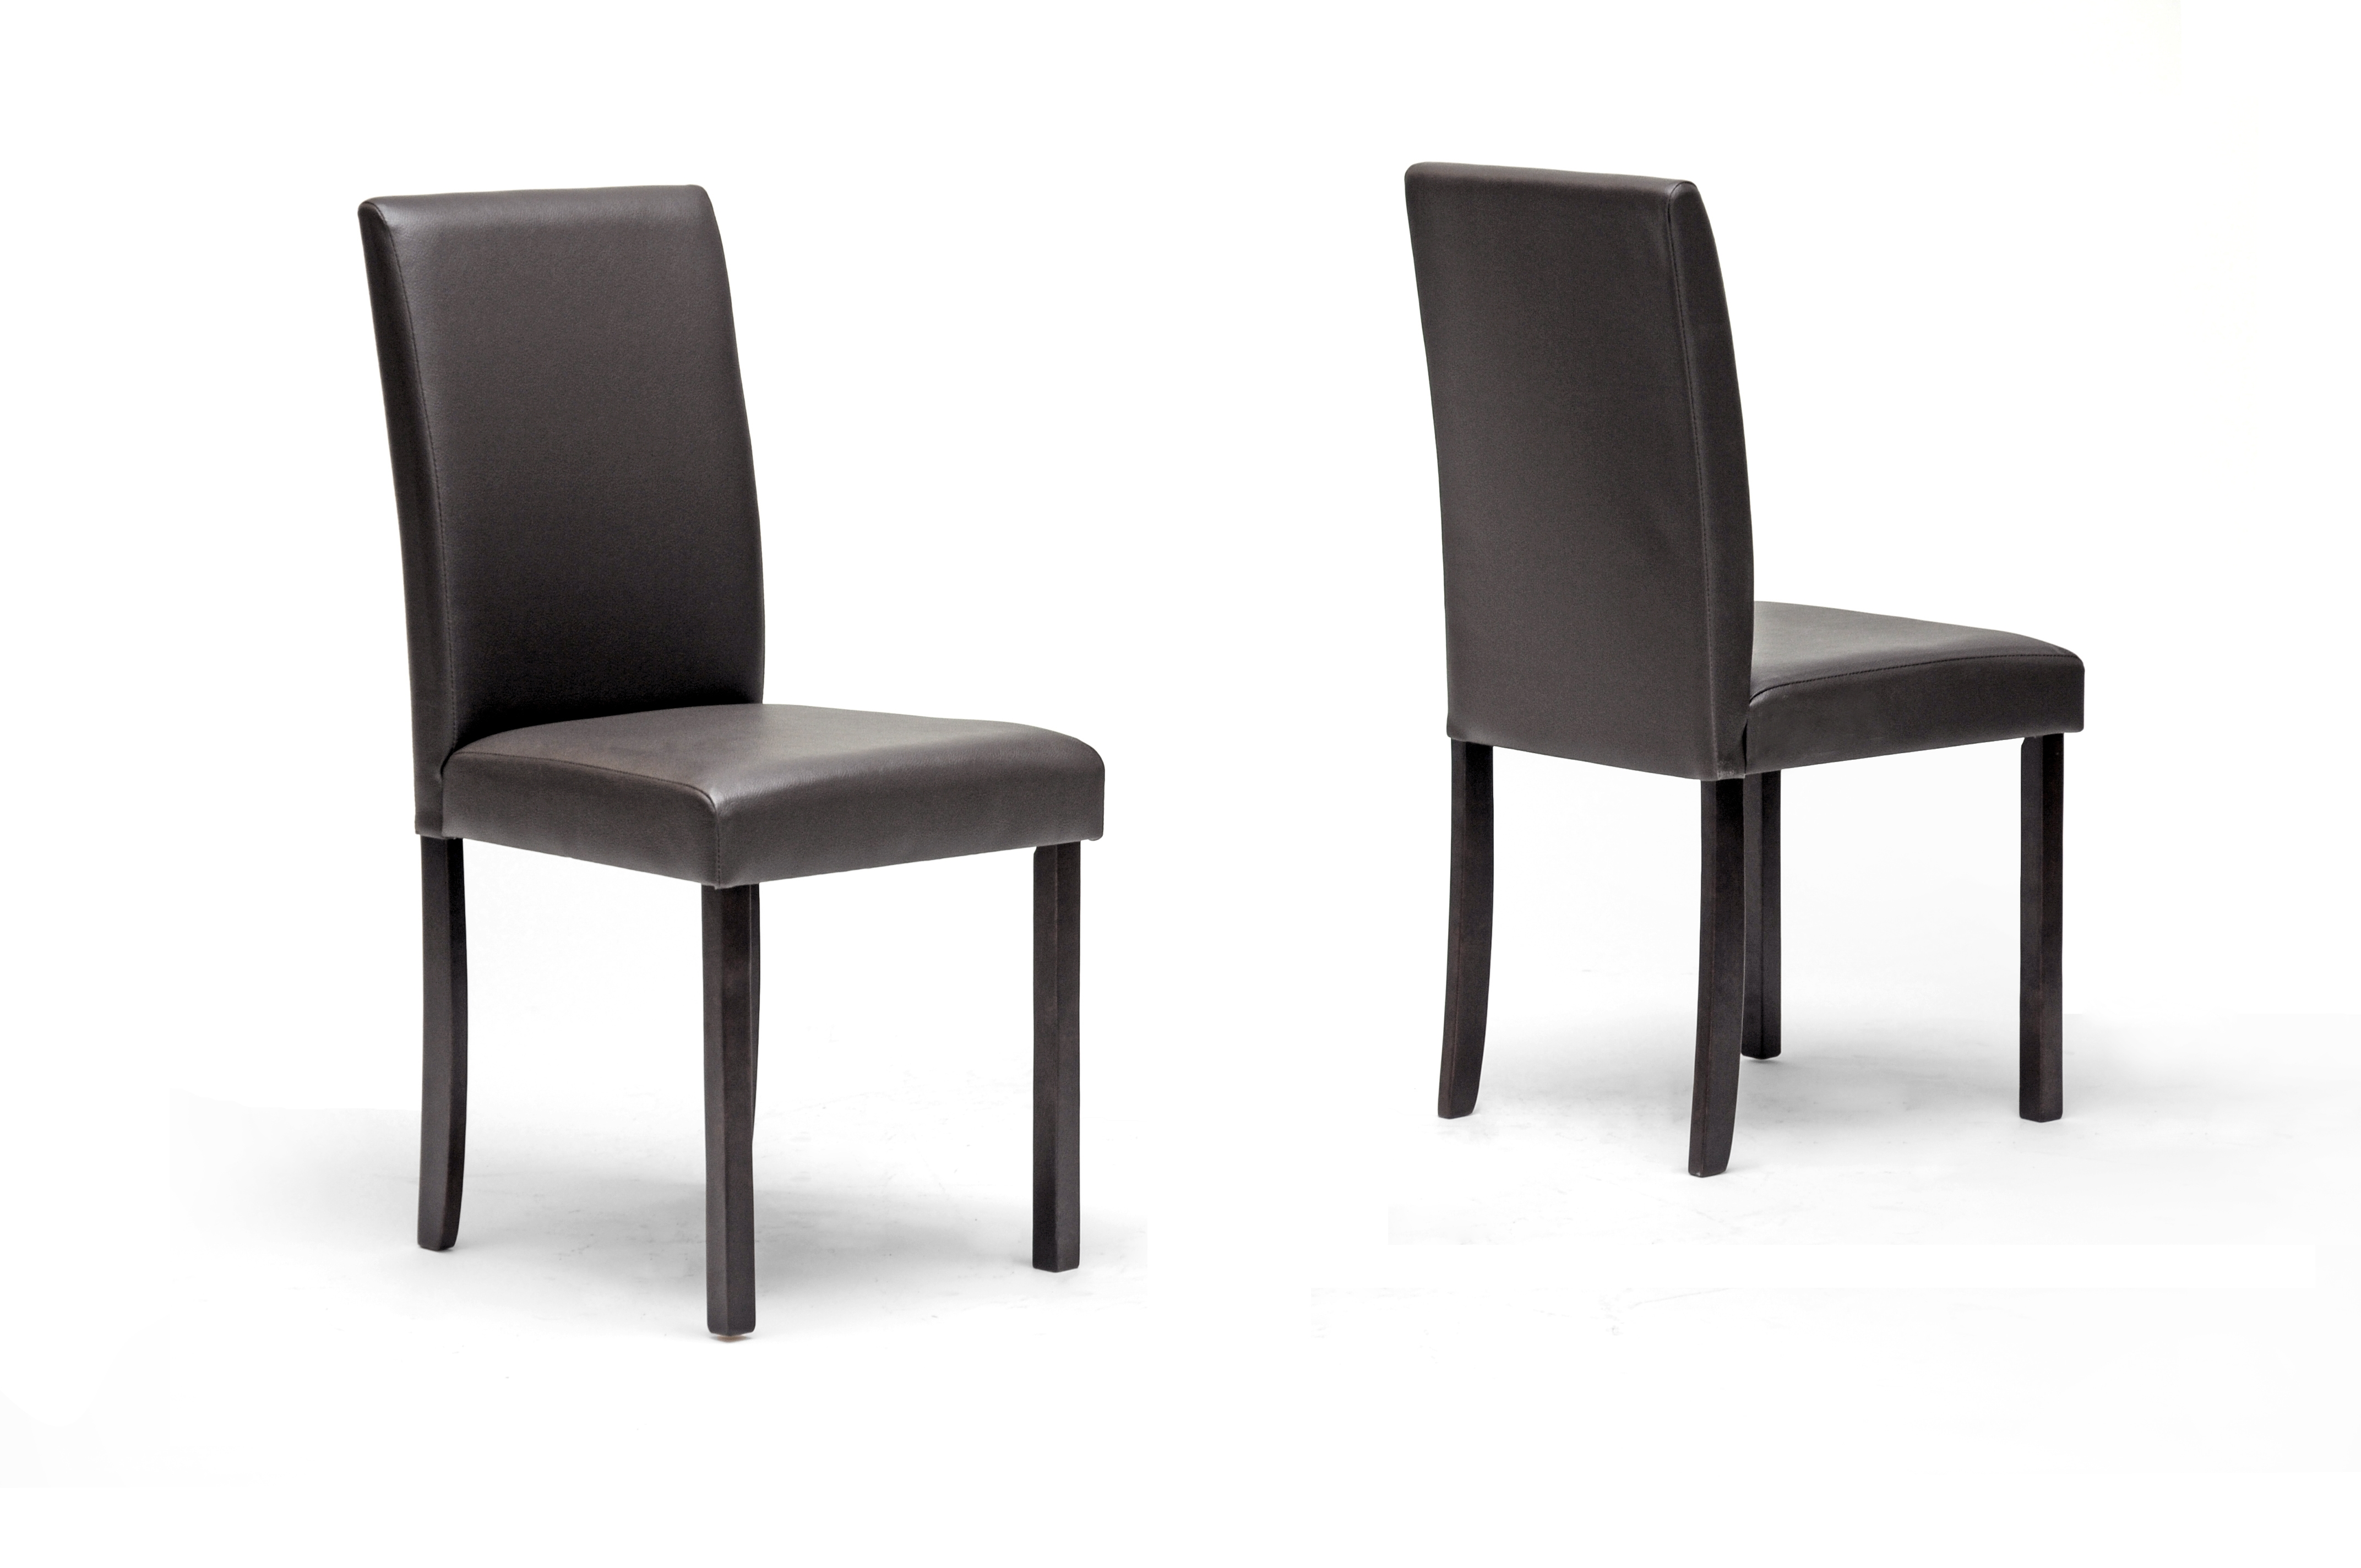 Baxton studio andrew modern dining chair set of 2 affordable modern furniture in chicago